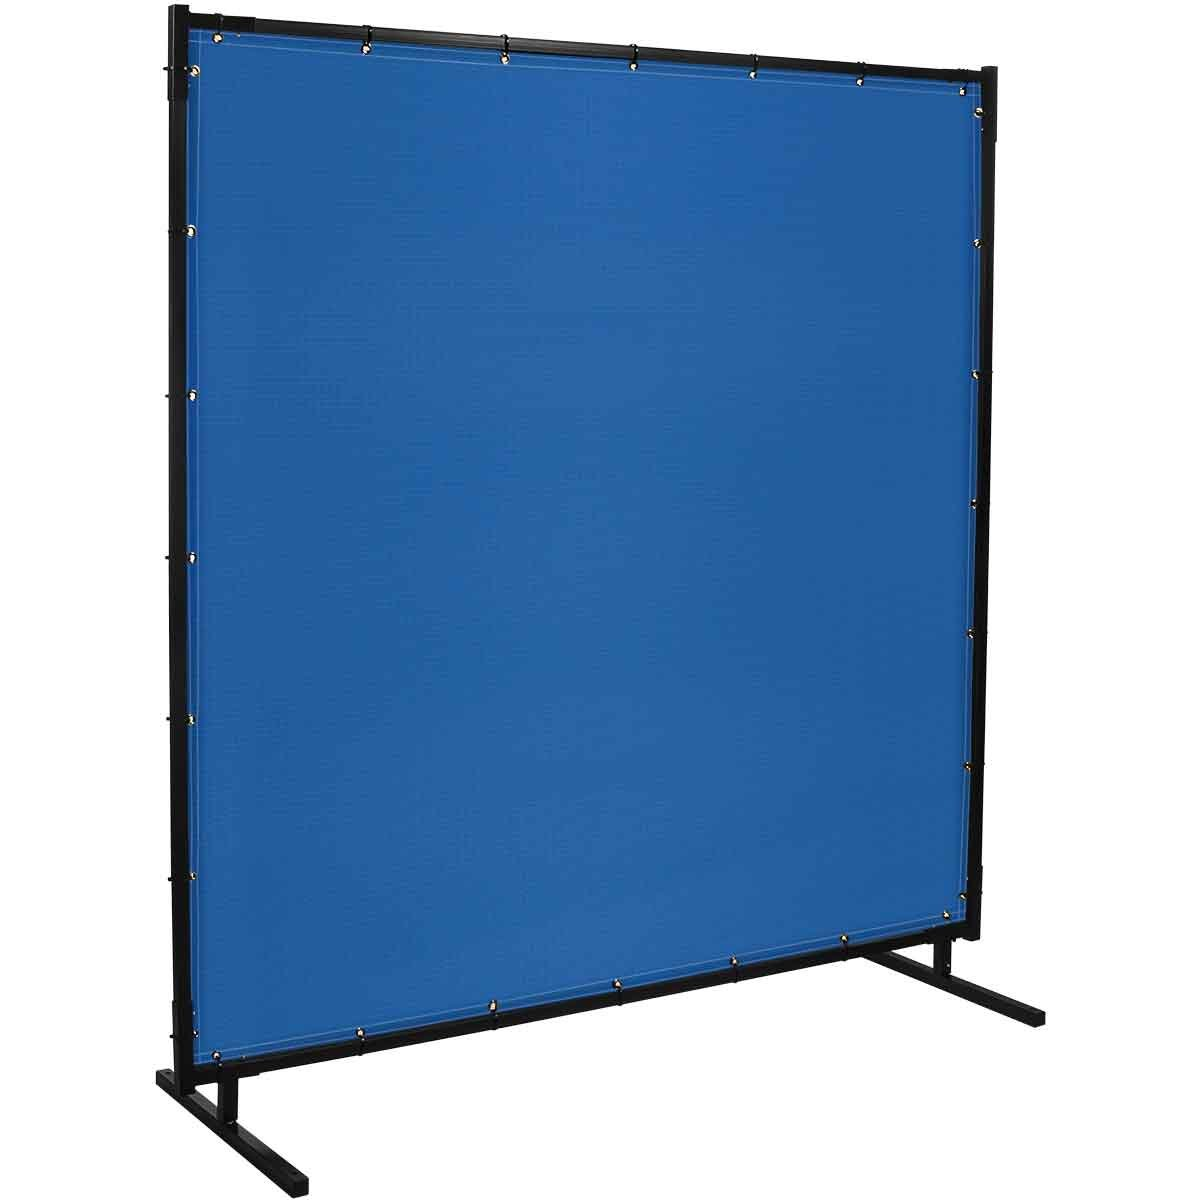 Steiner 535HD-4X6 Protect-O-Screen Hd Welding Screen with 13-Ounce Vinyl Laminated Polyester Curtain, Blue, 4' x 6' by Steiner